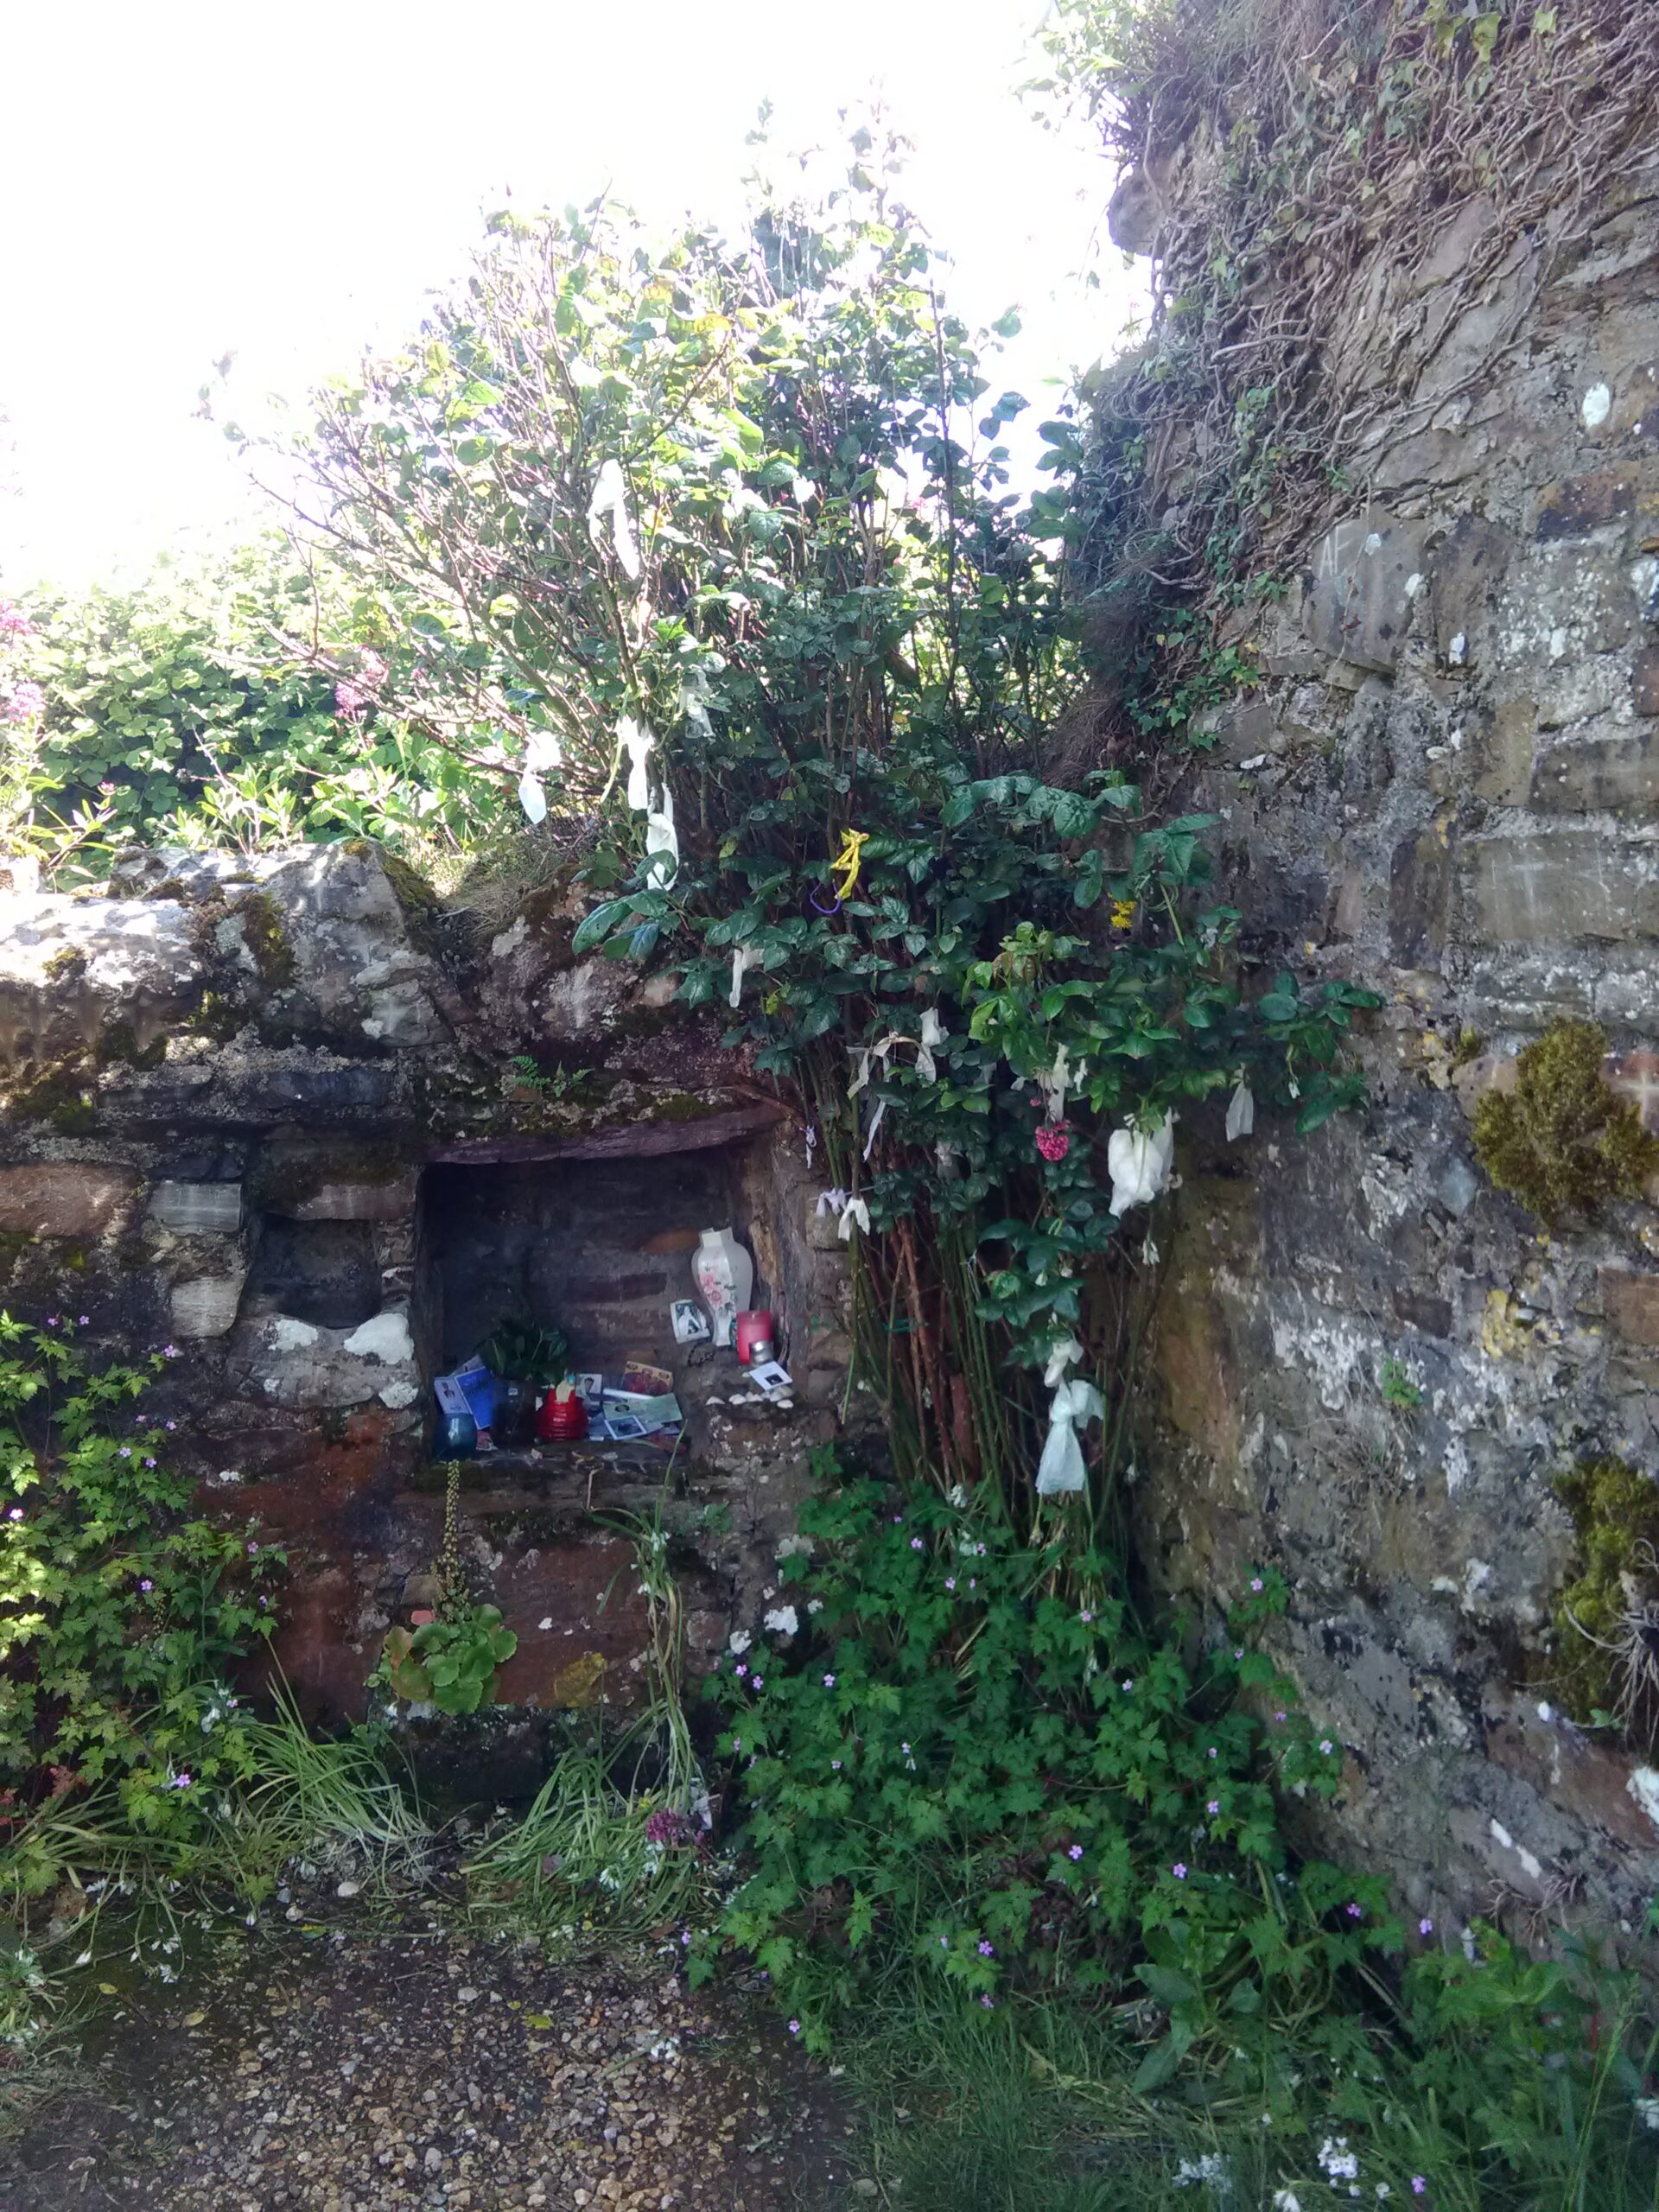 Offerings and rag tree near St Declan's Well, Co. Waterford, by Conchúr Mag Eacháin (photographer).